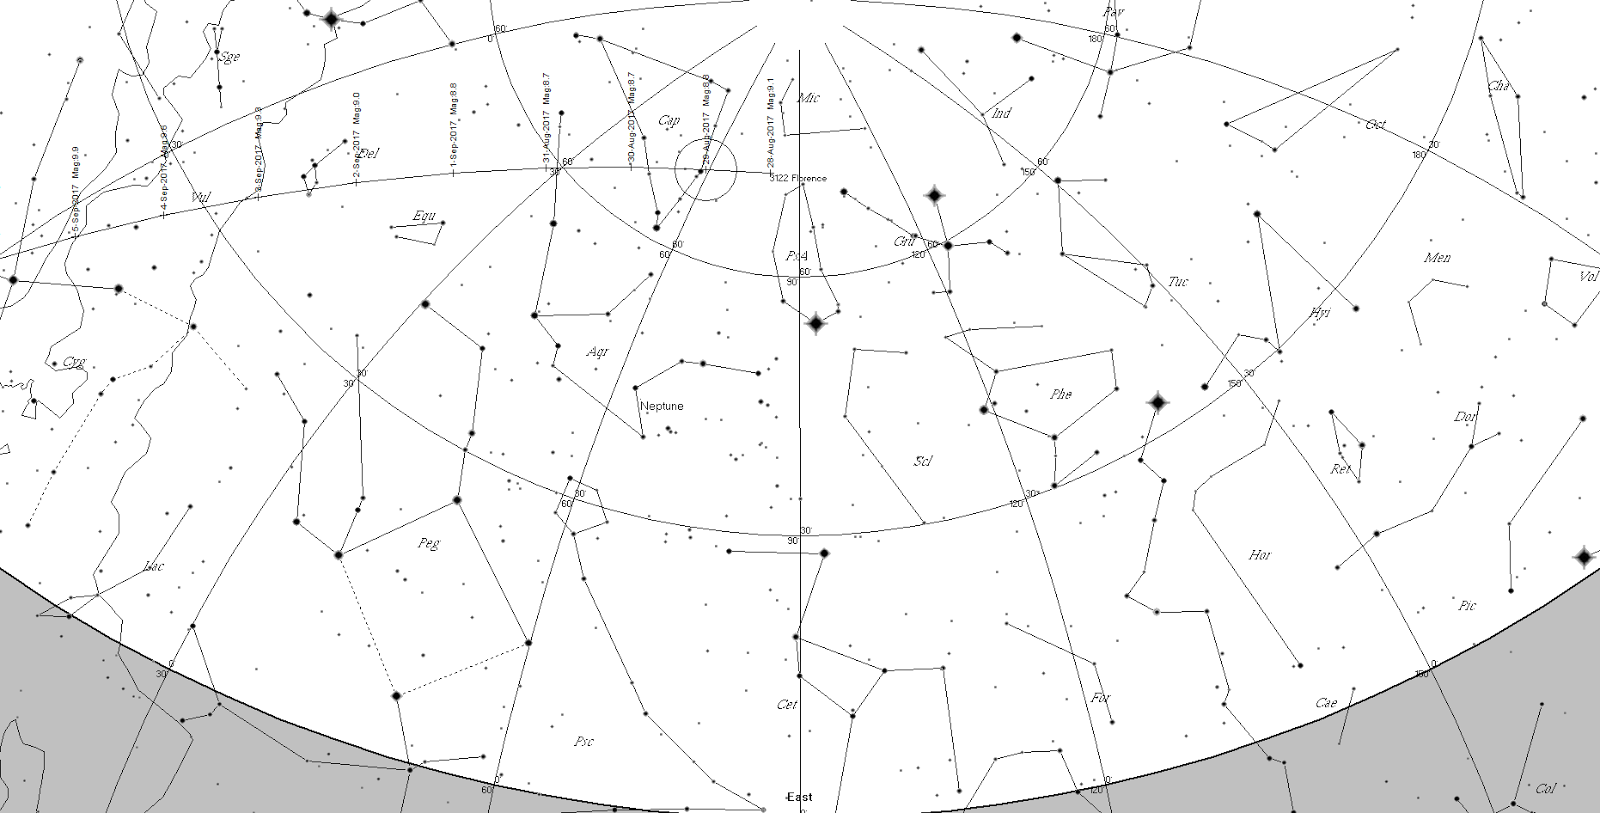 Astroblog: Seeing Asteroid 3122 Florence tonight (3